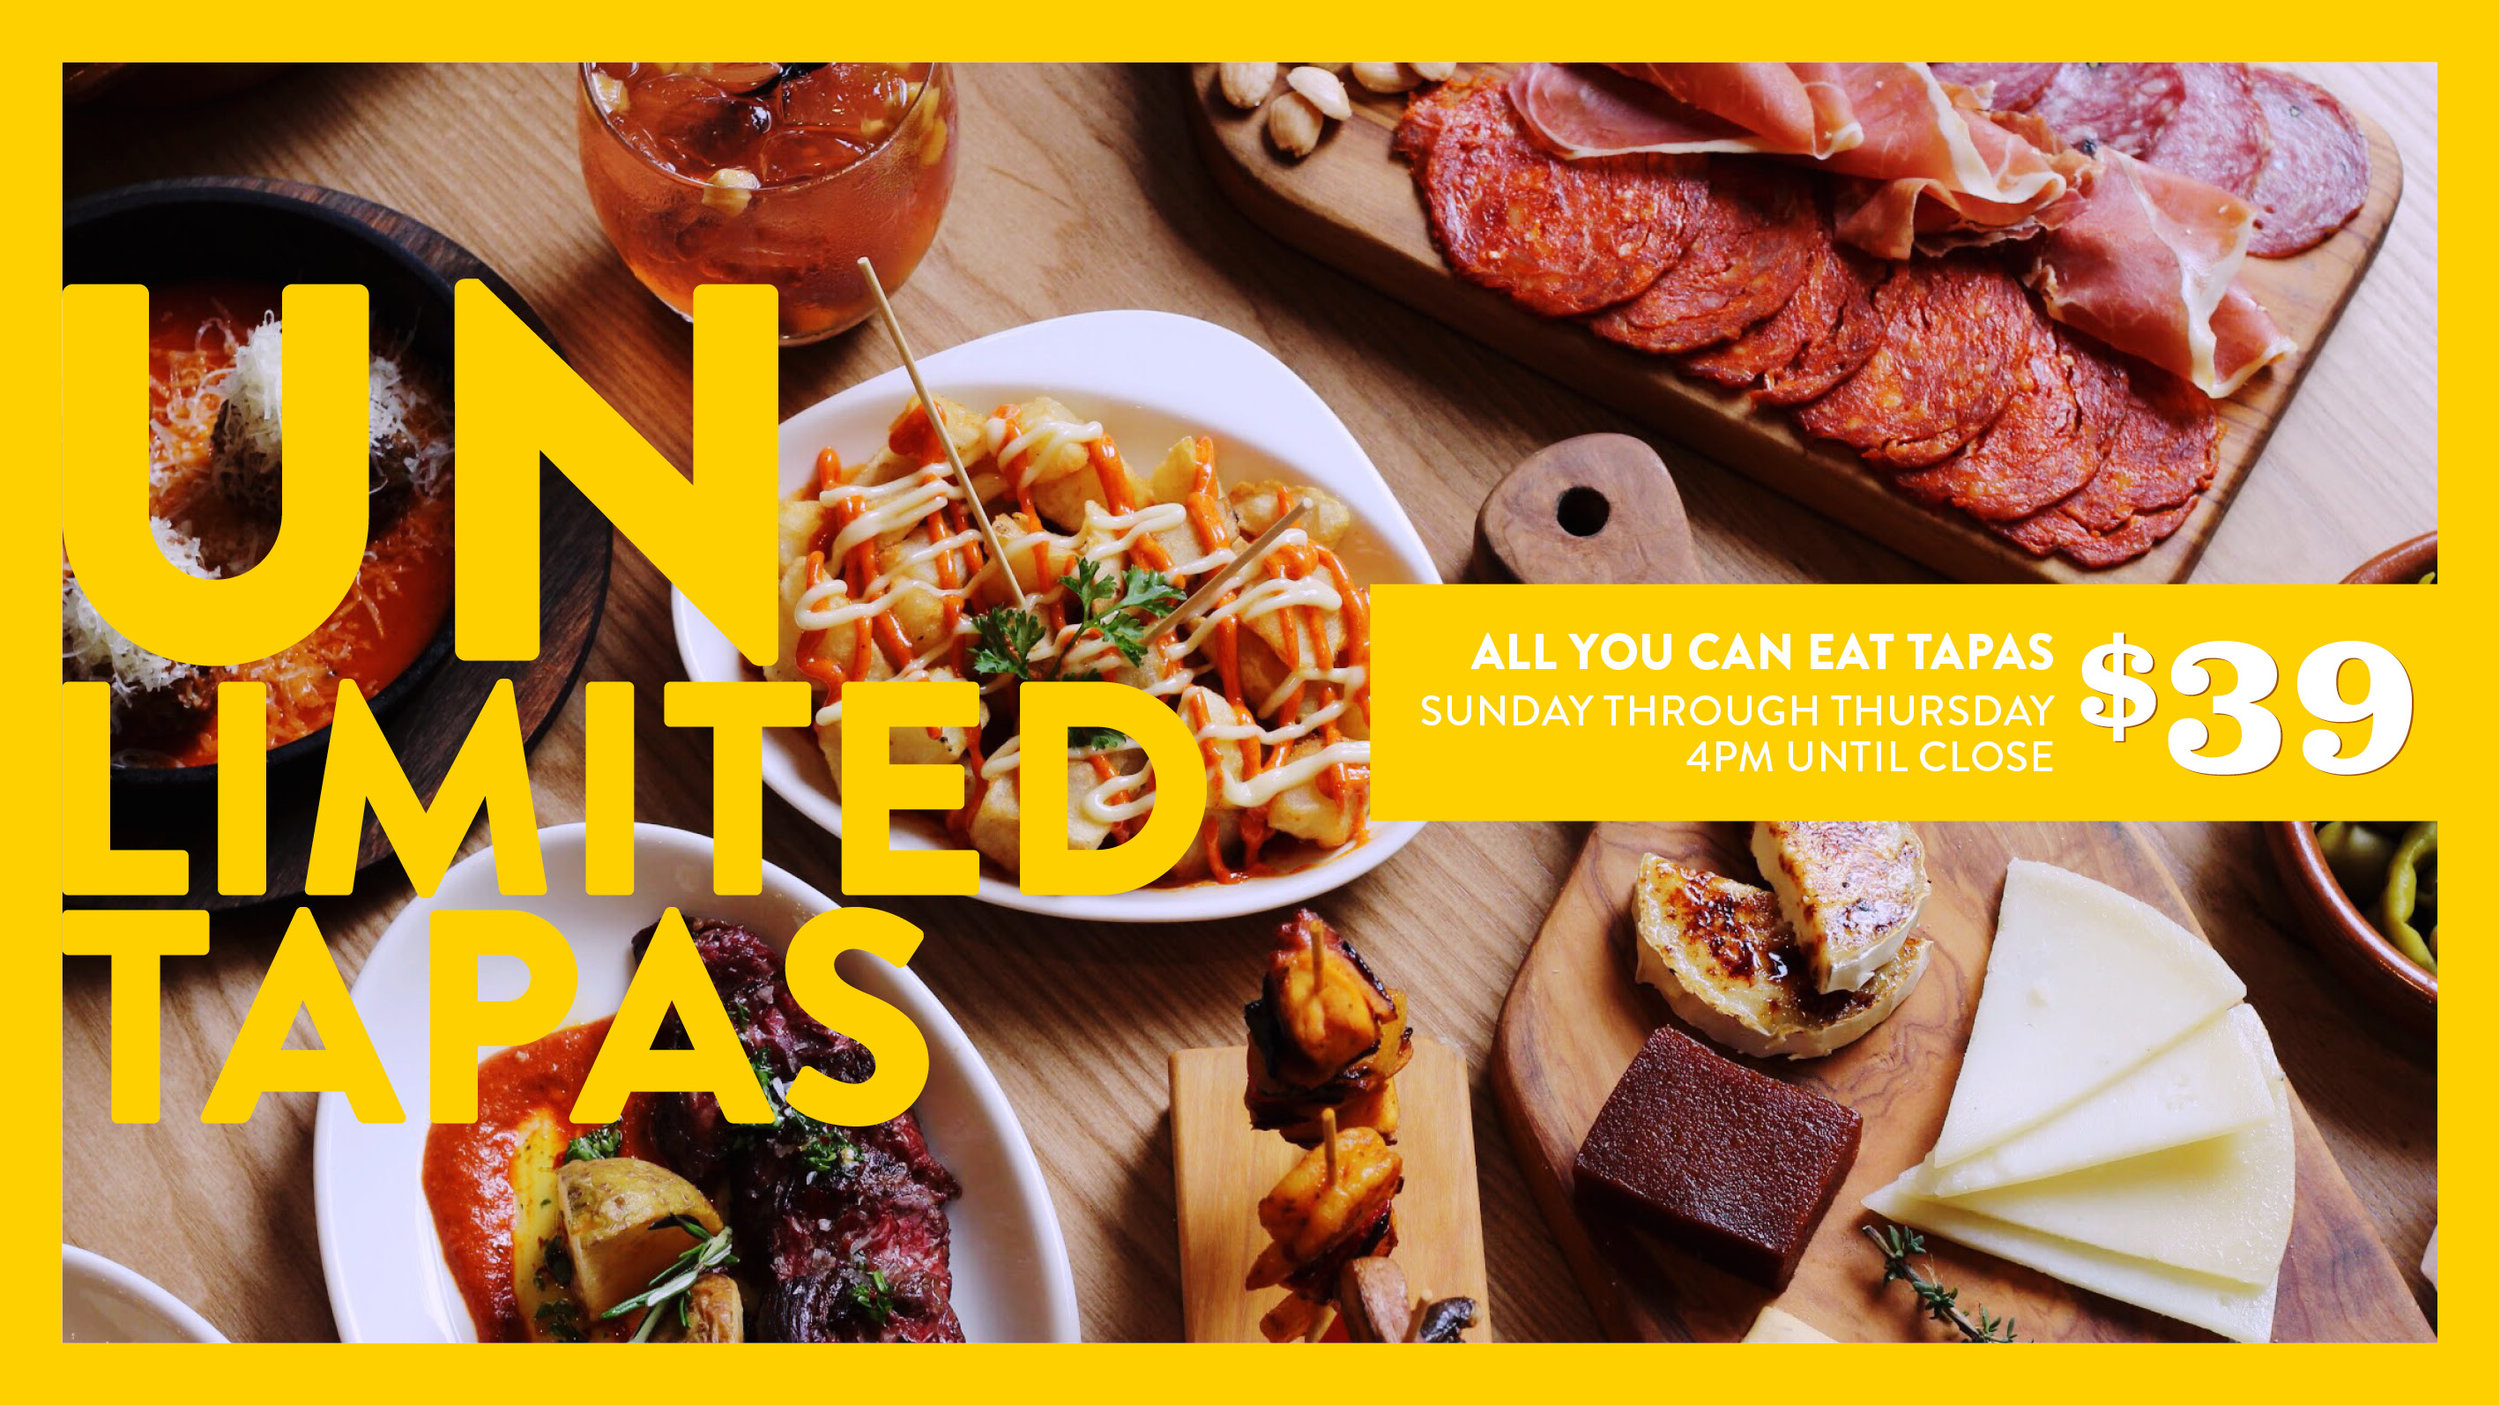 Unlimited Tapas - Enjoy Unlimited Tapas Sunday through Thursday at all three locations 4pm to close.